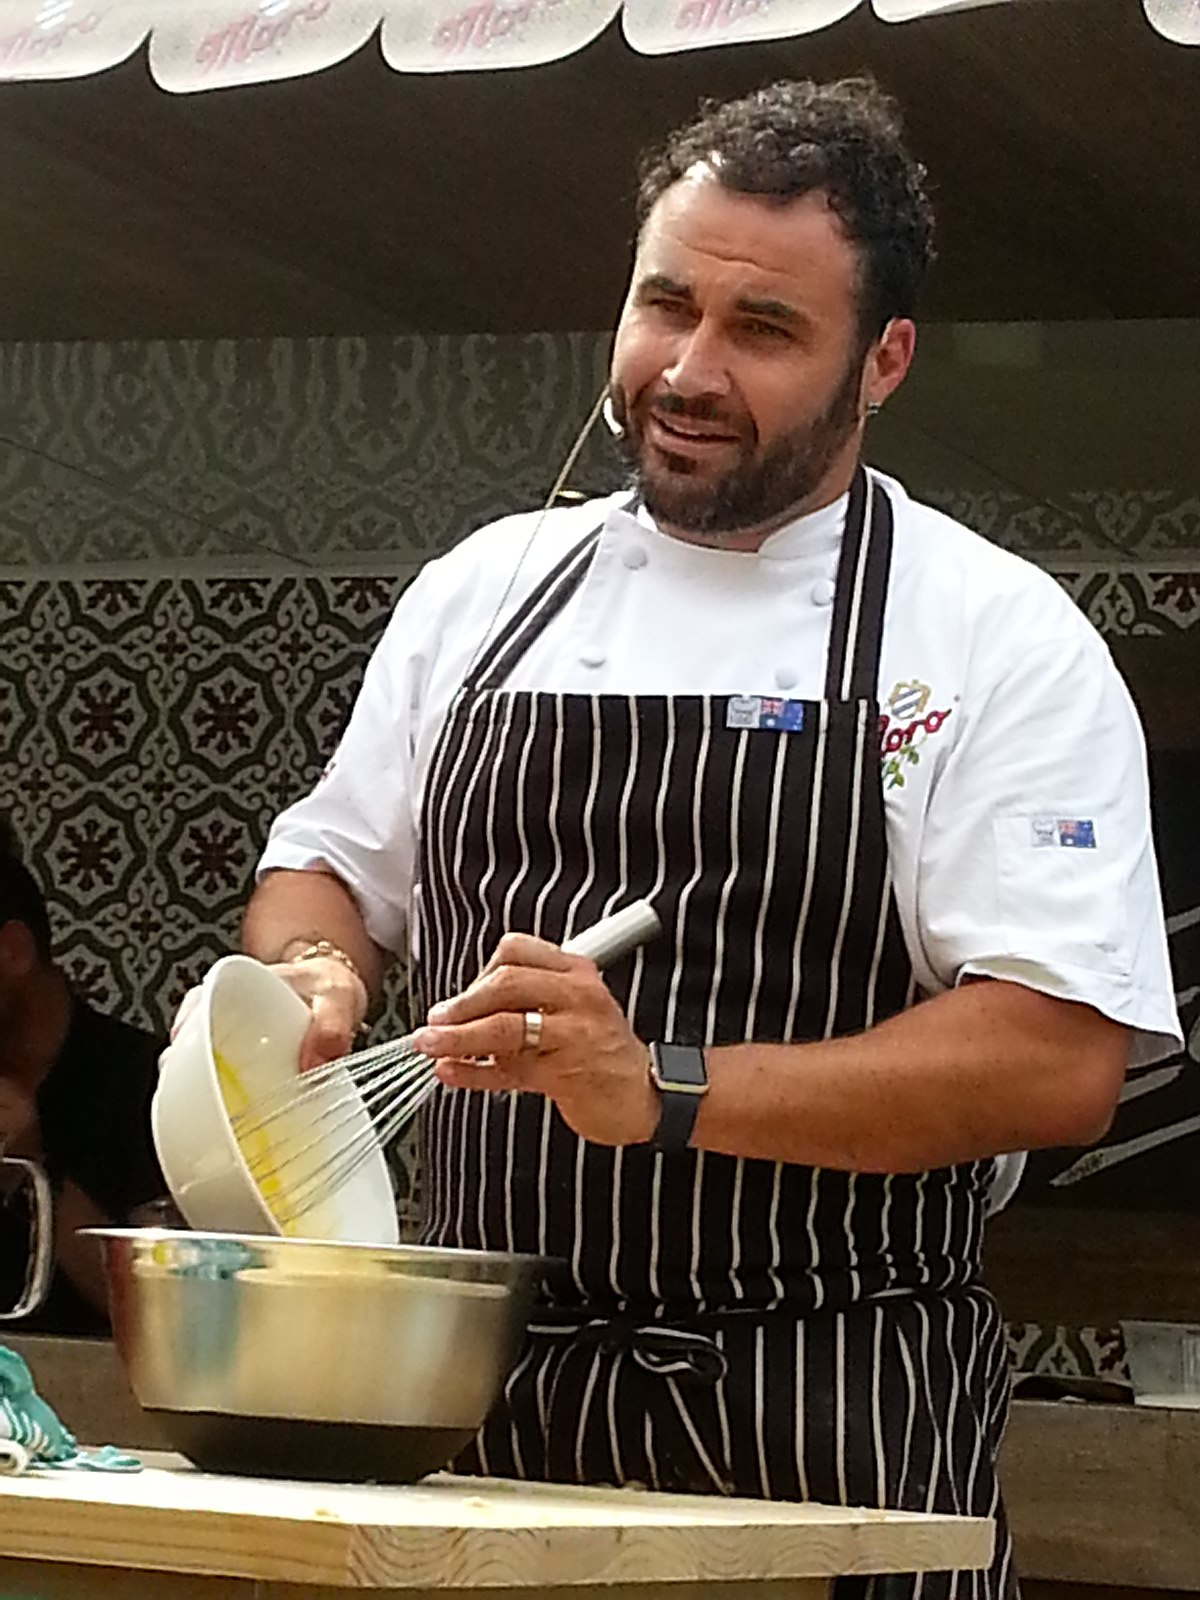 Miguel maestre wikipedia for The living room tv show australia